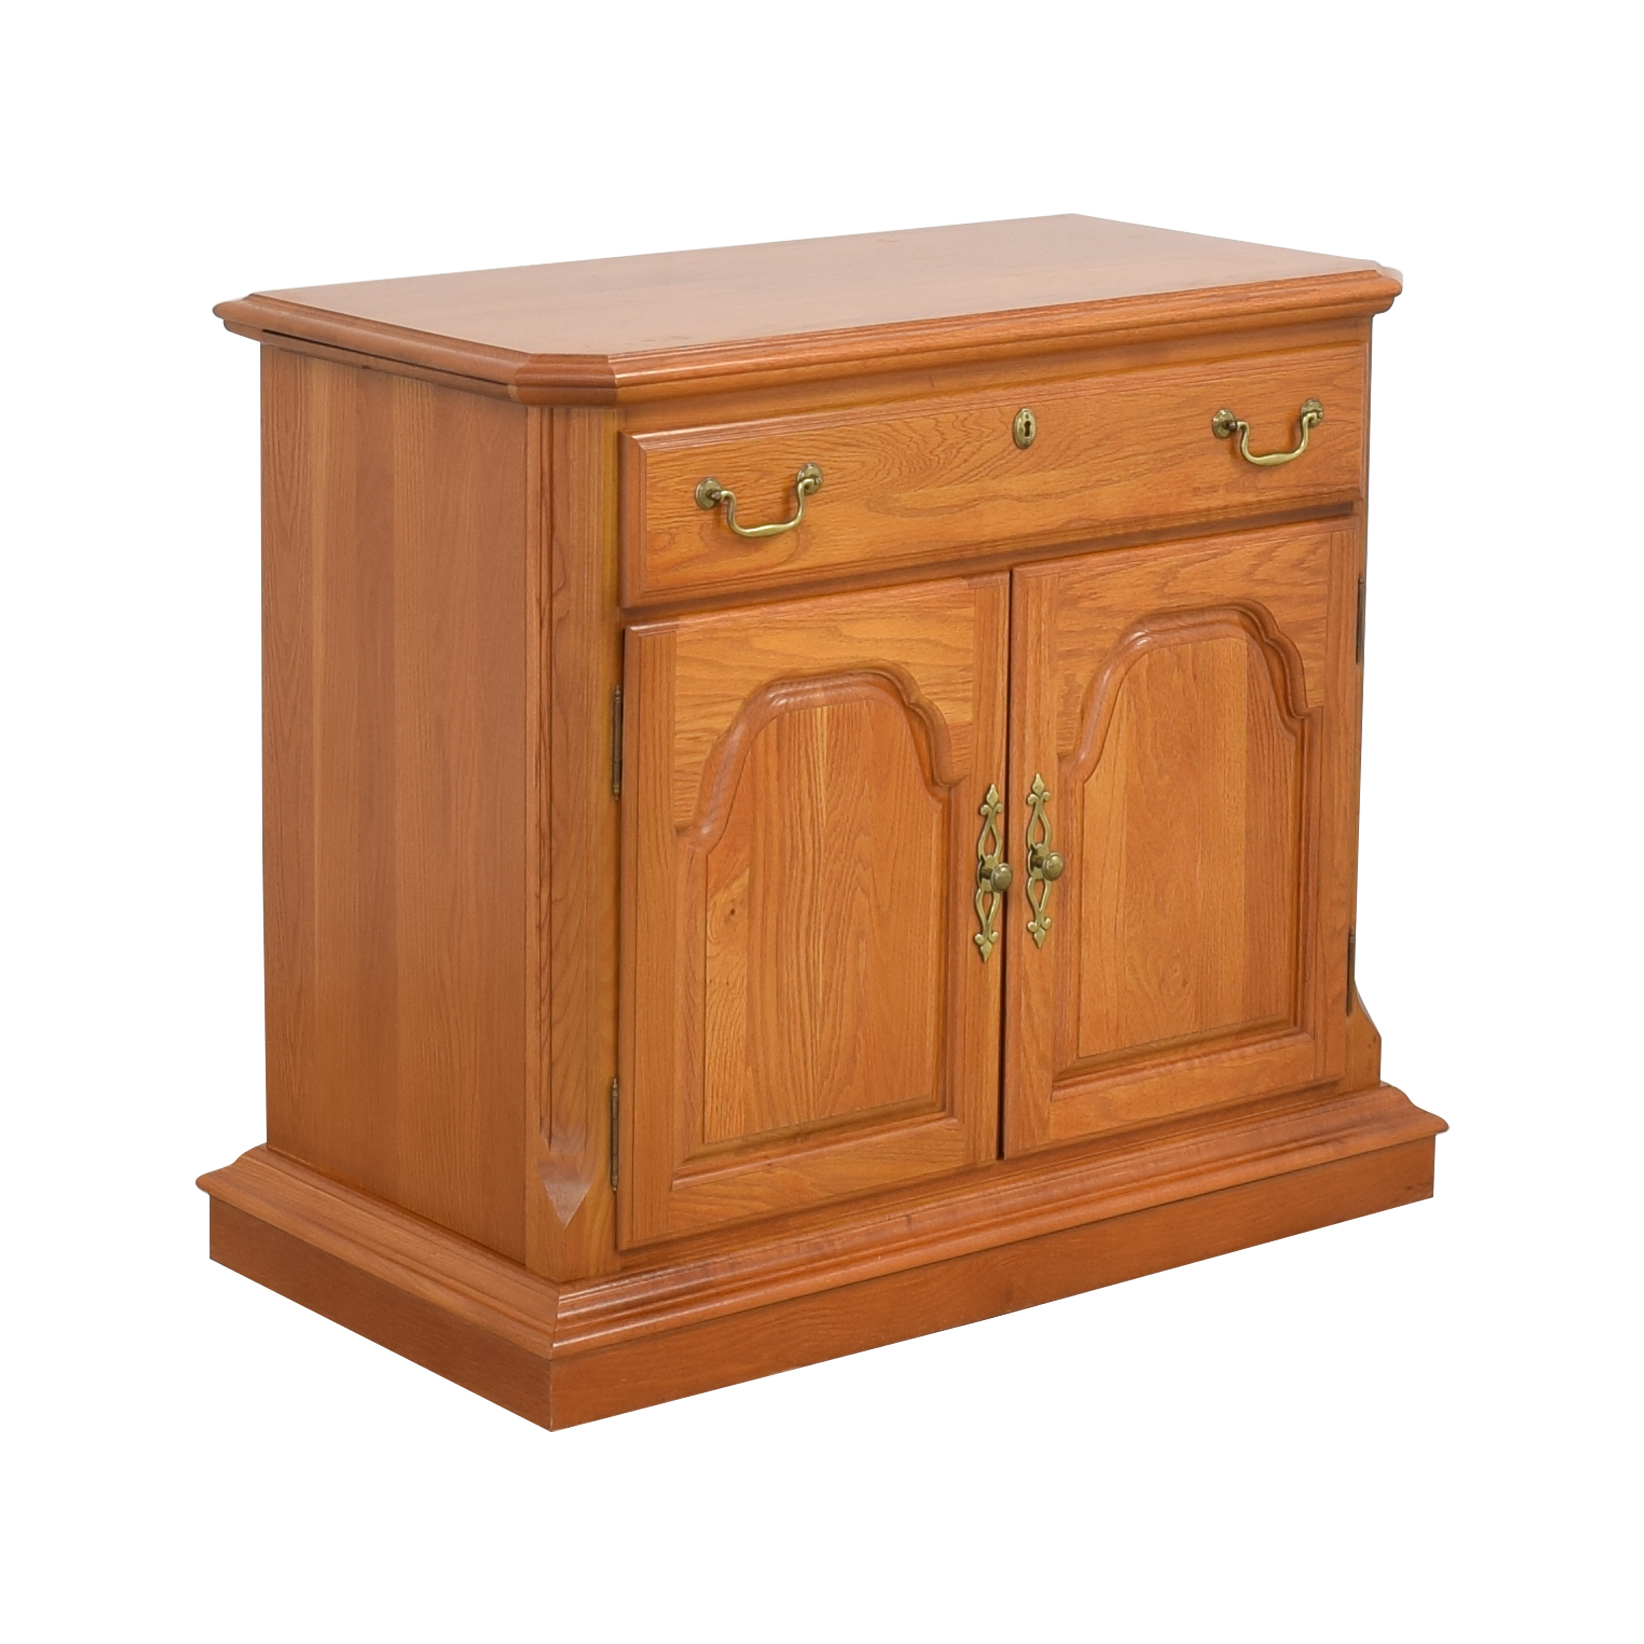 Sumter Cabinet Co. Sumter Cabinet Company Bar Cart Buffet Sideboard coupon